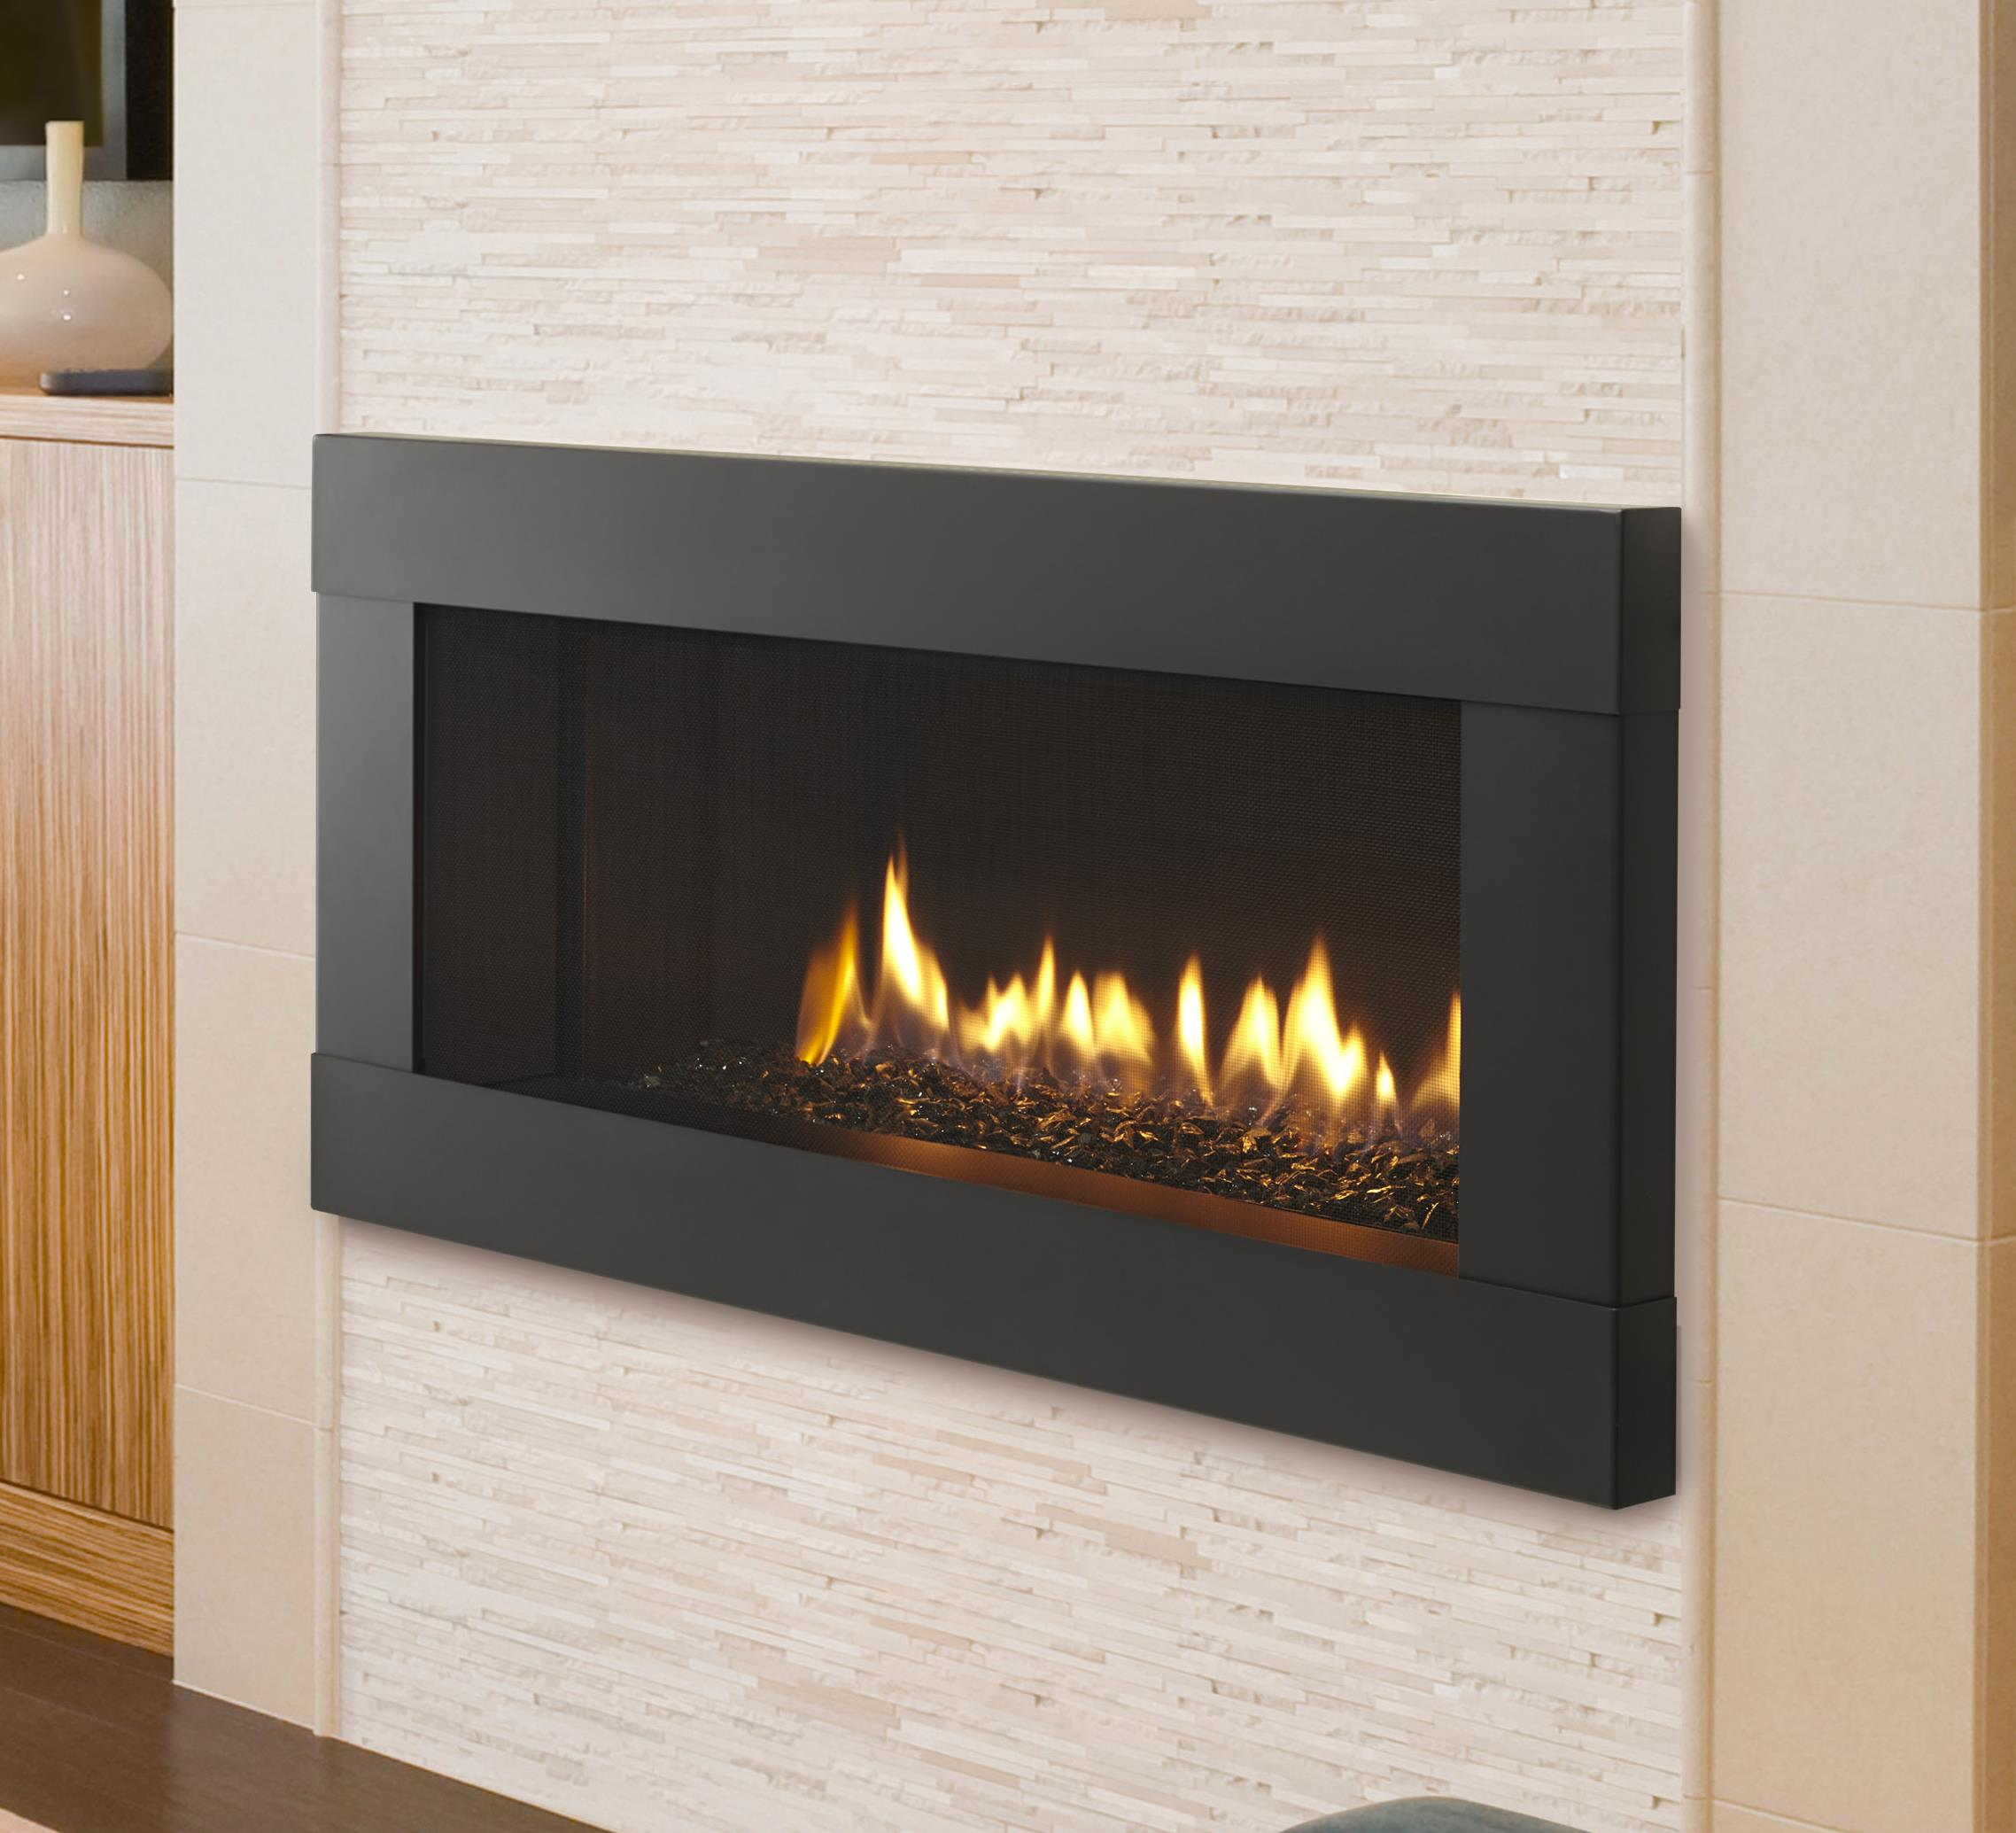 gemco premium black barrier gas logs safety fireplace shore fire edmonton birch heatilator fireplaces vector